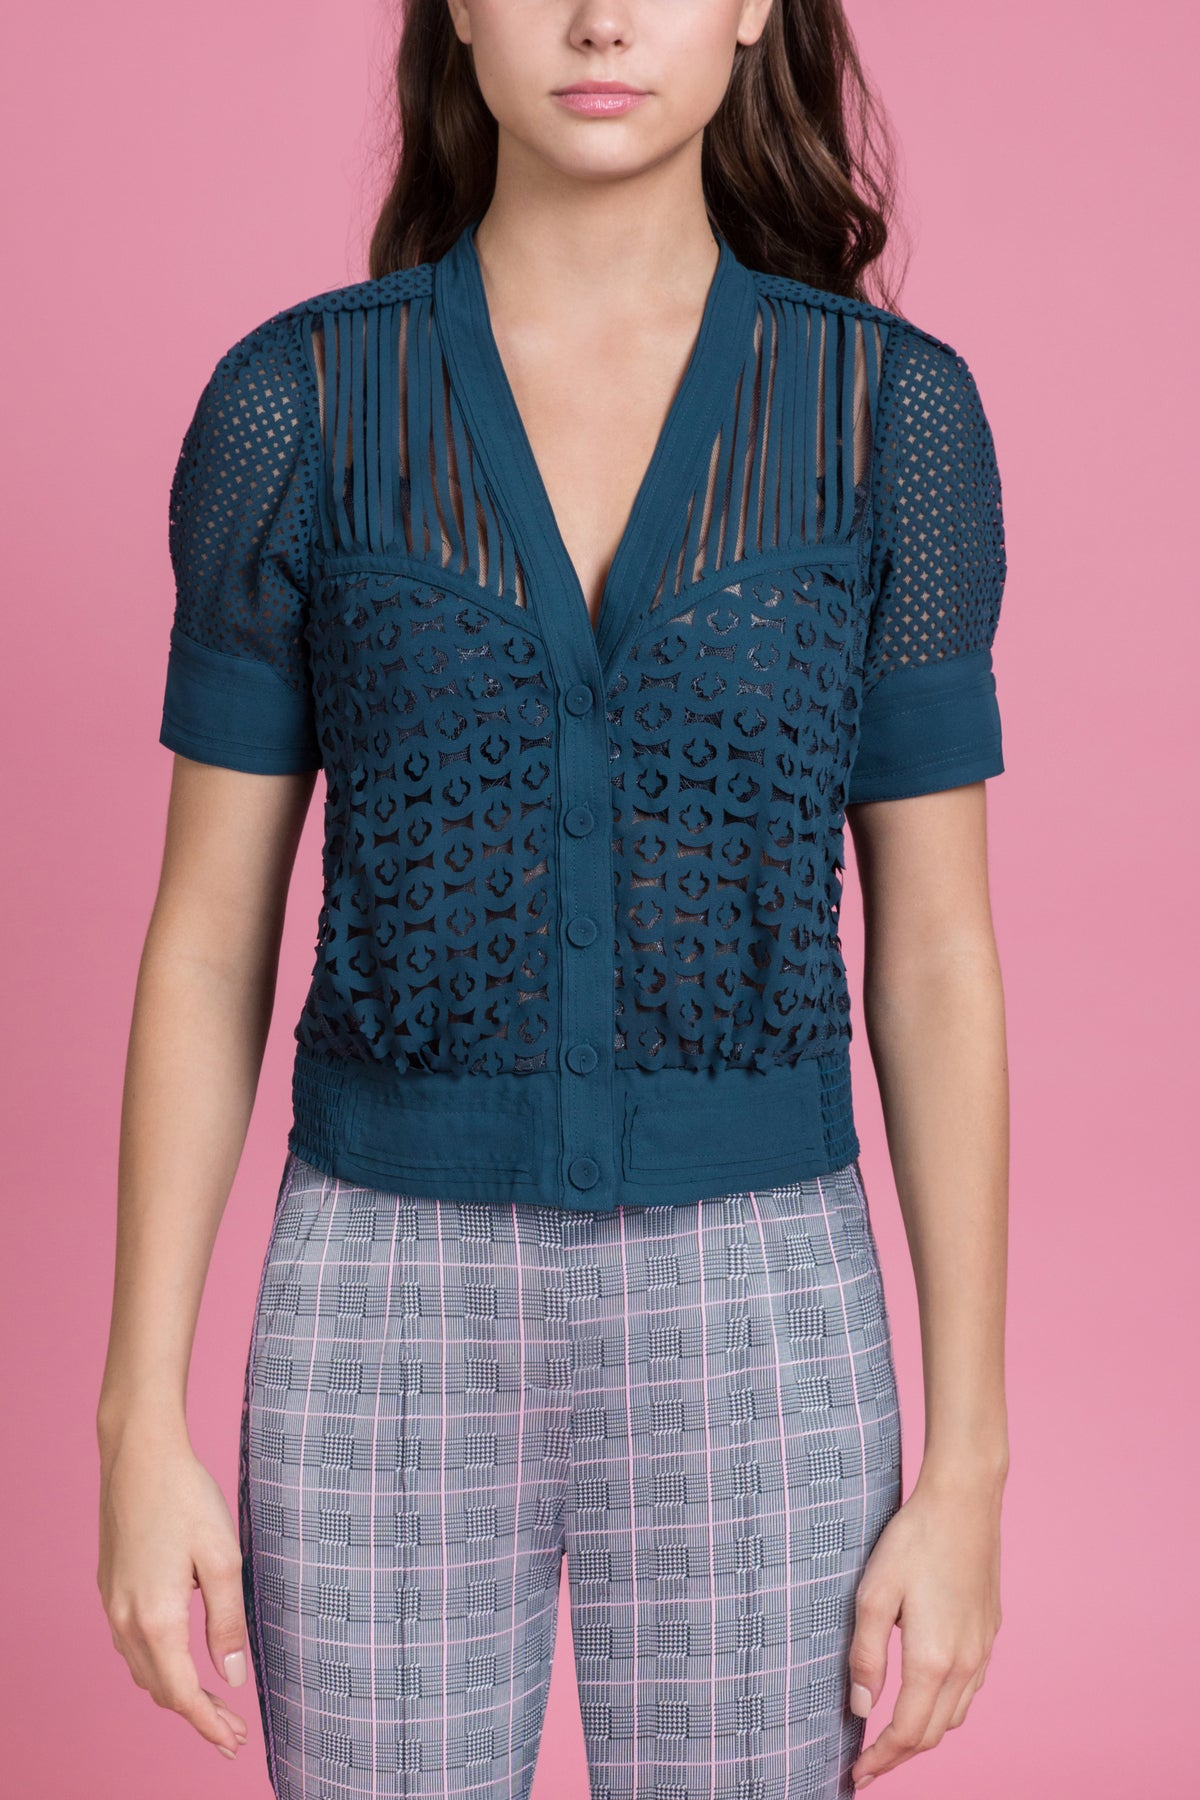 Laser Cut Cardi Blouse - Final Sale